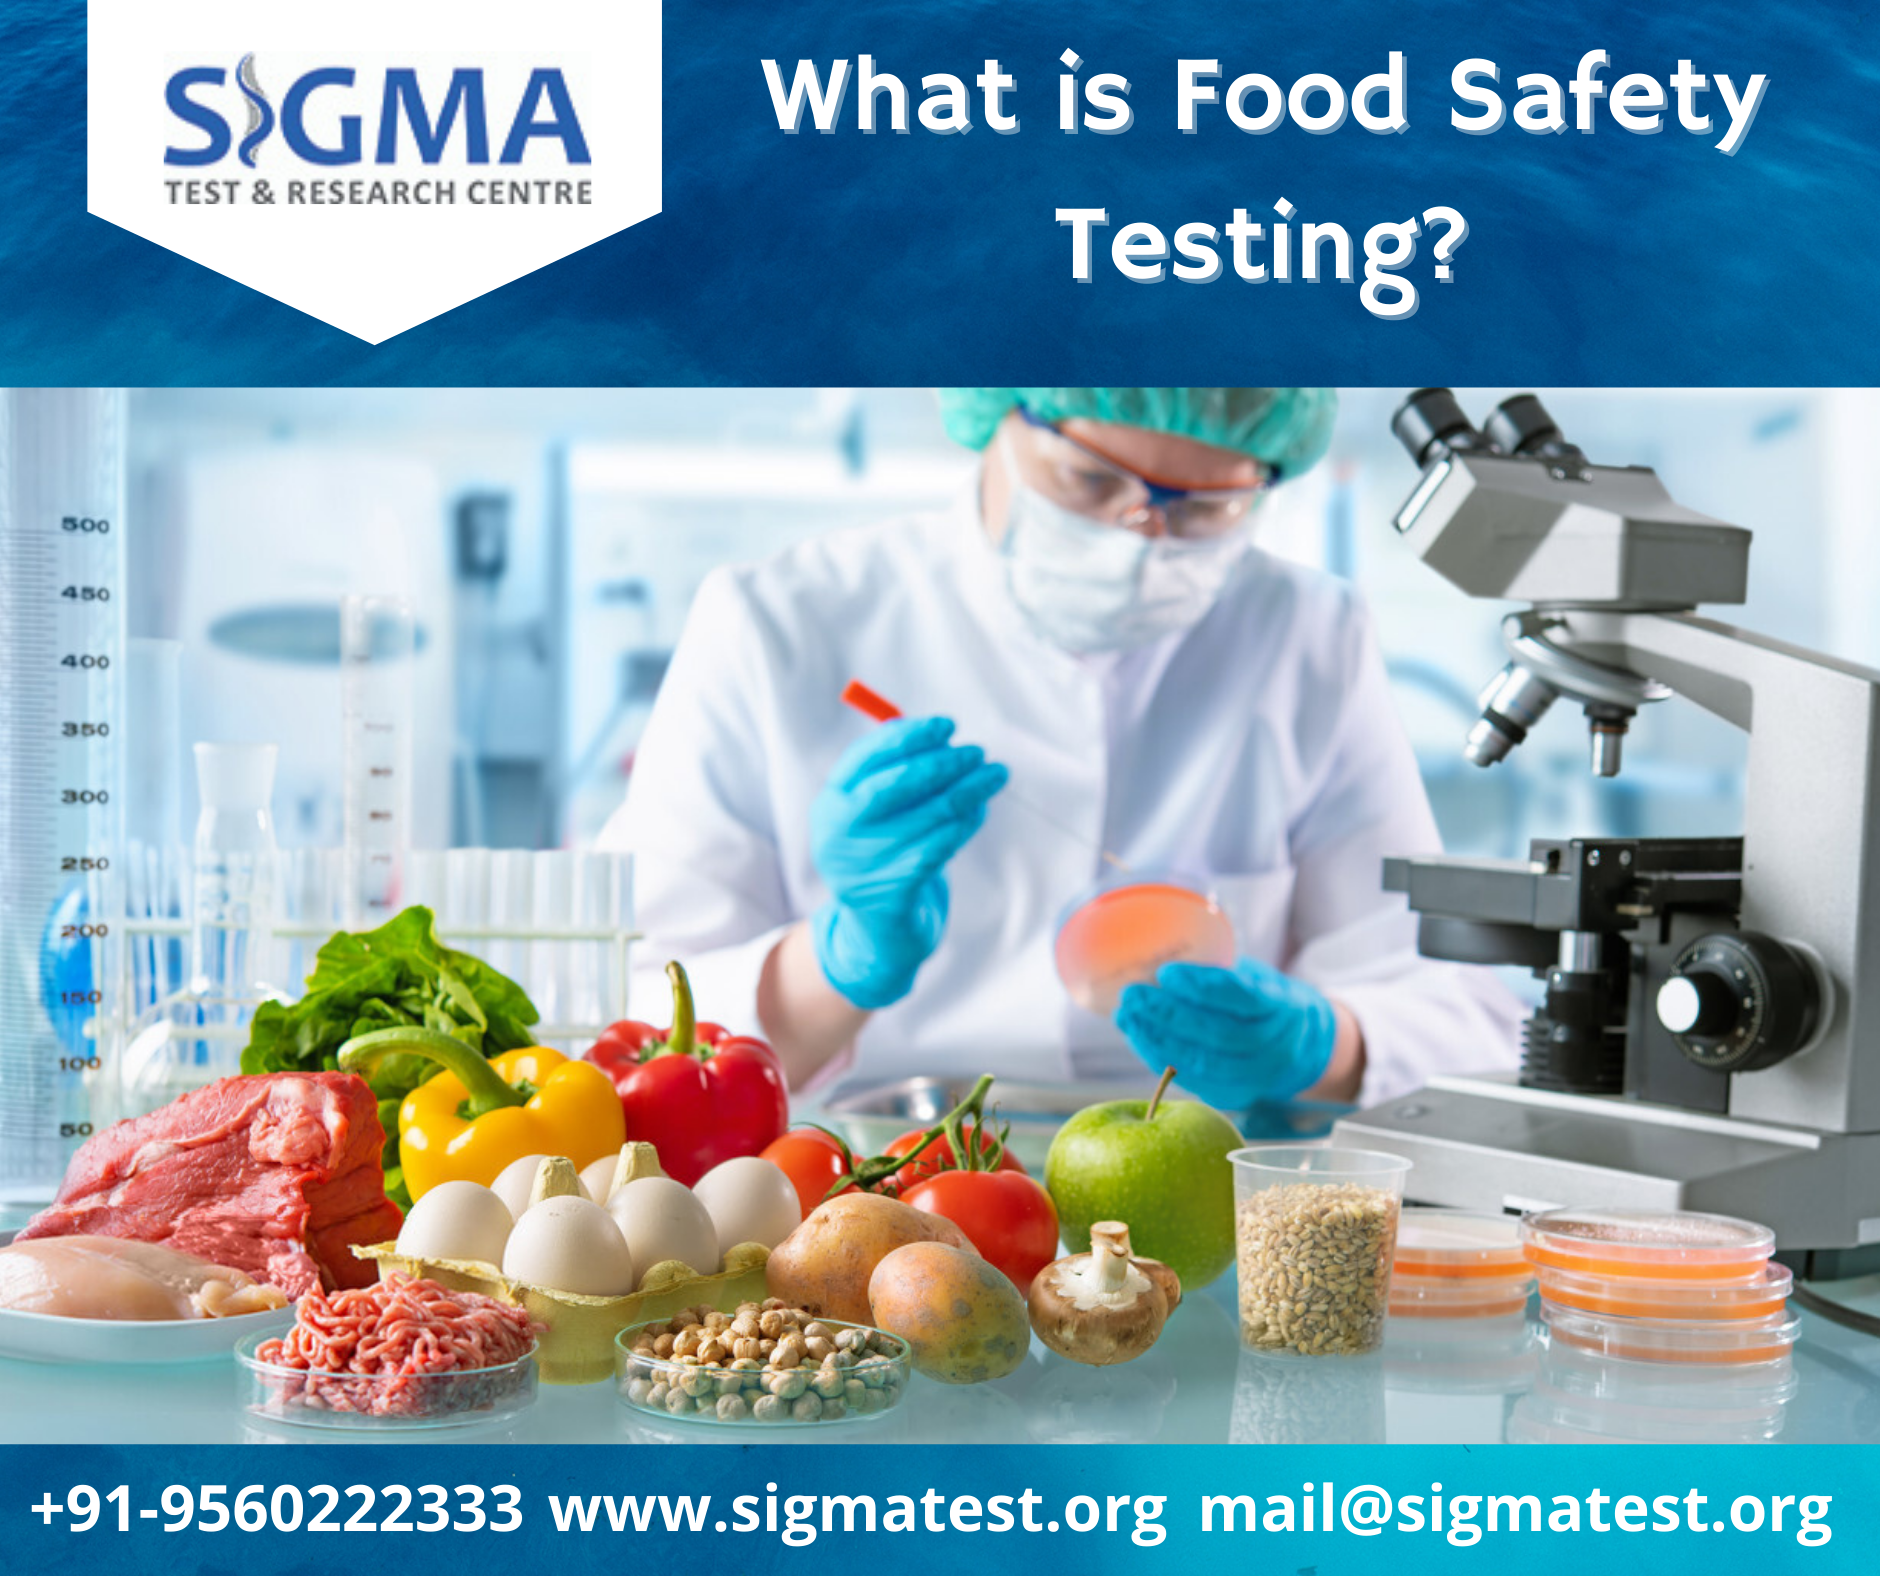 Food Safety Testing